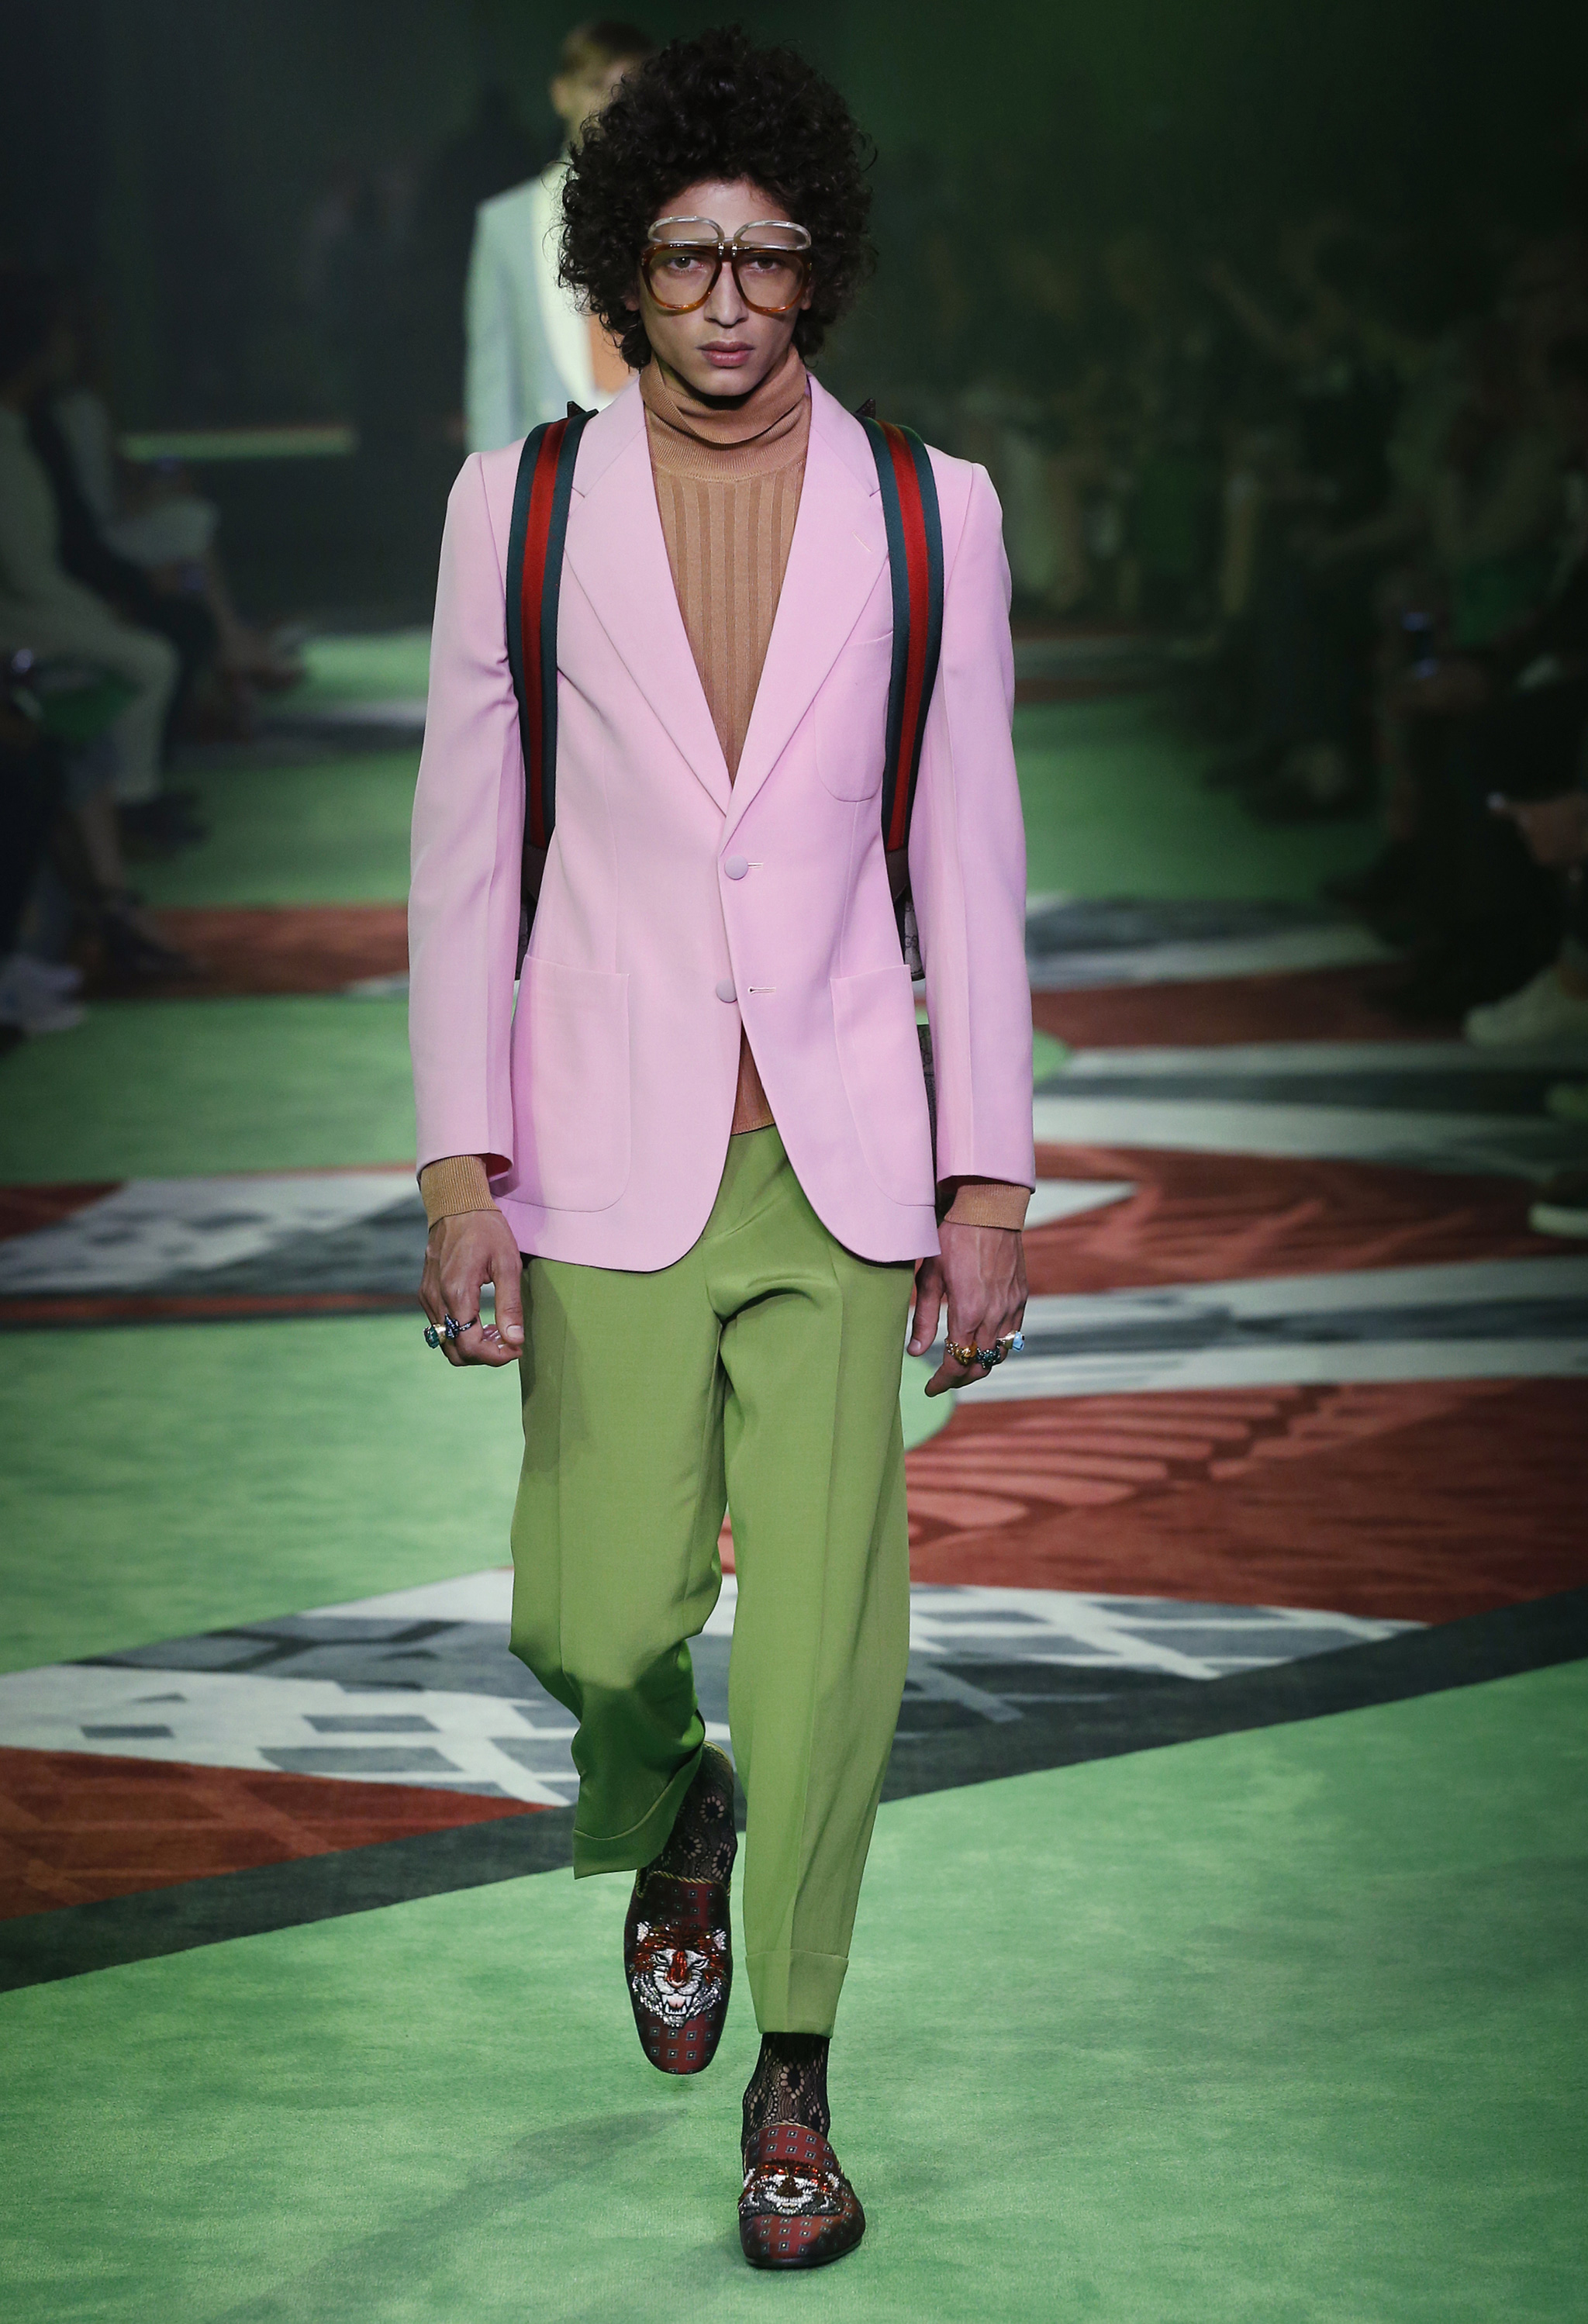 Pantone Color of the Year 2017: PANTONE 15-0343 Greenery | Menswear Gucci